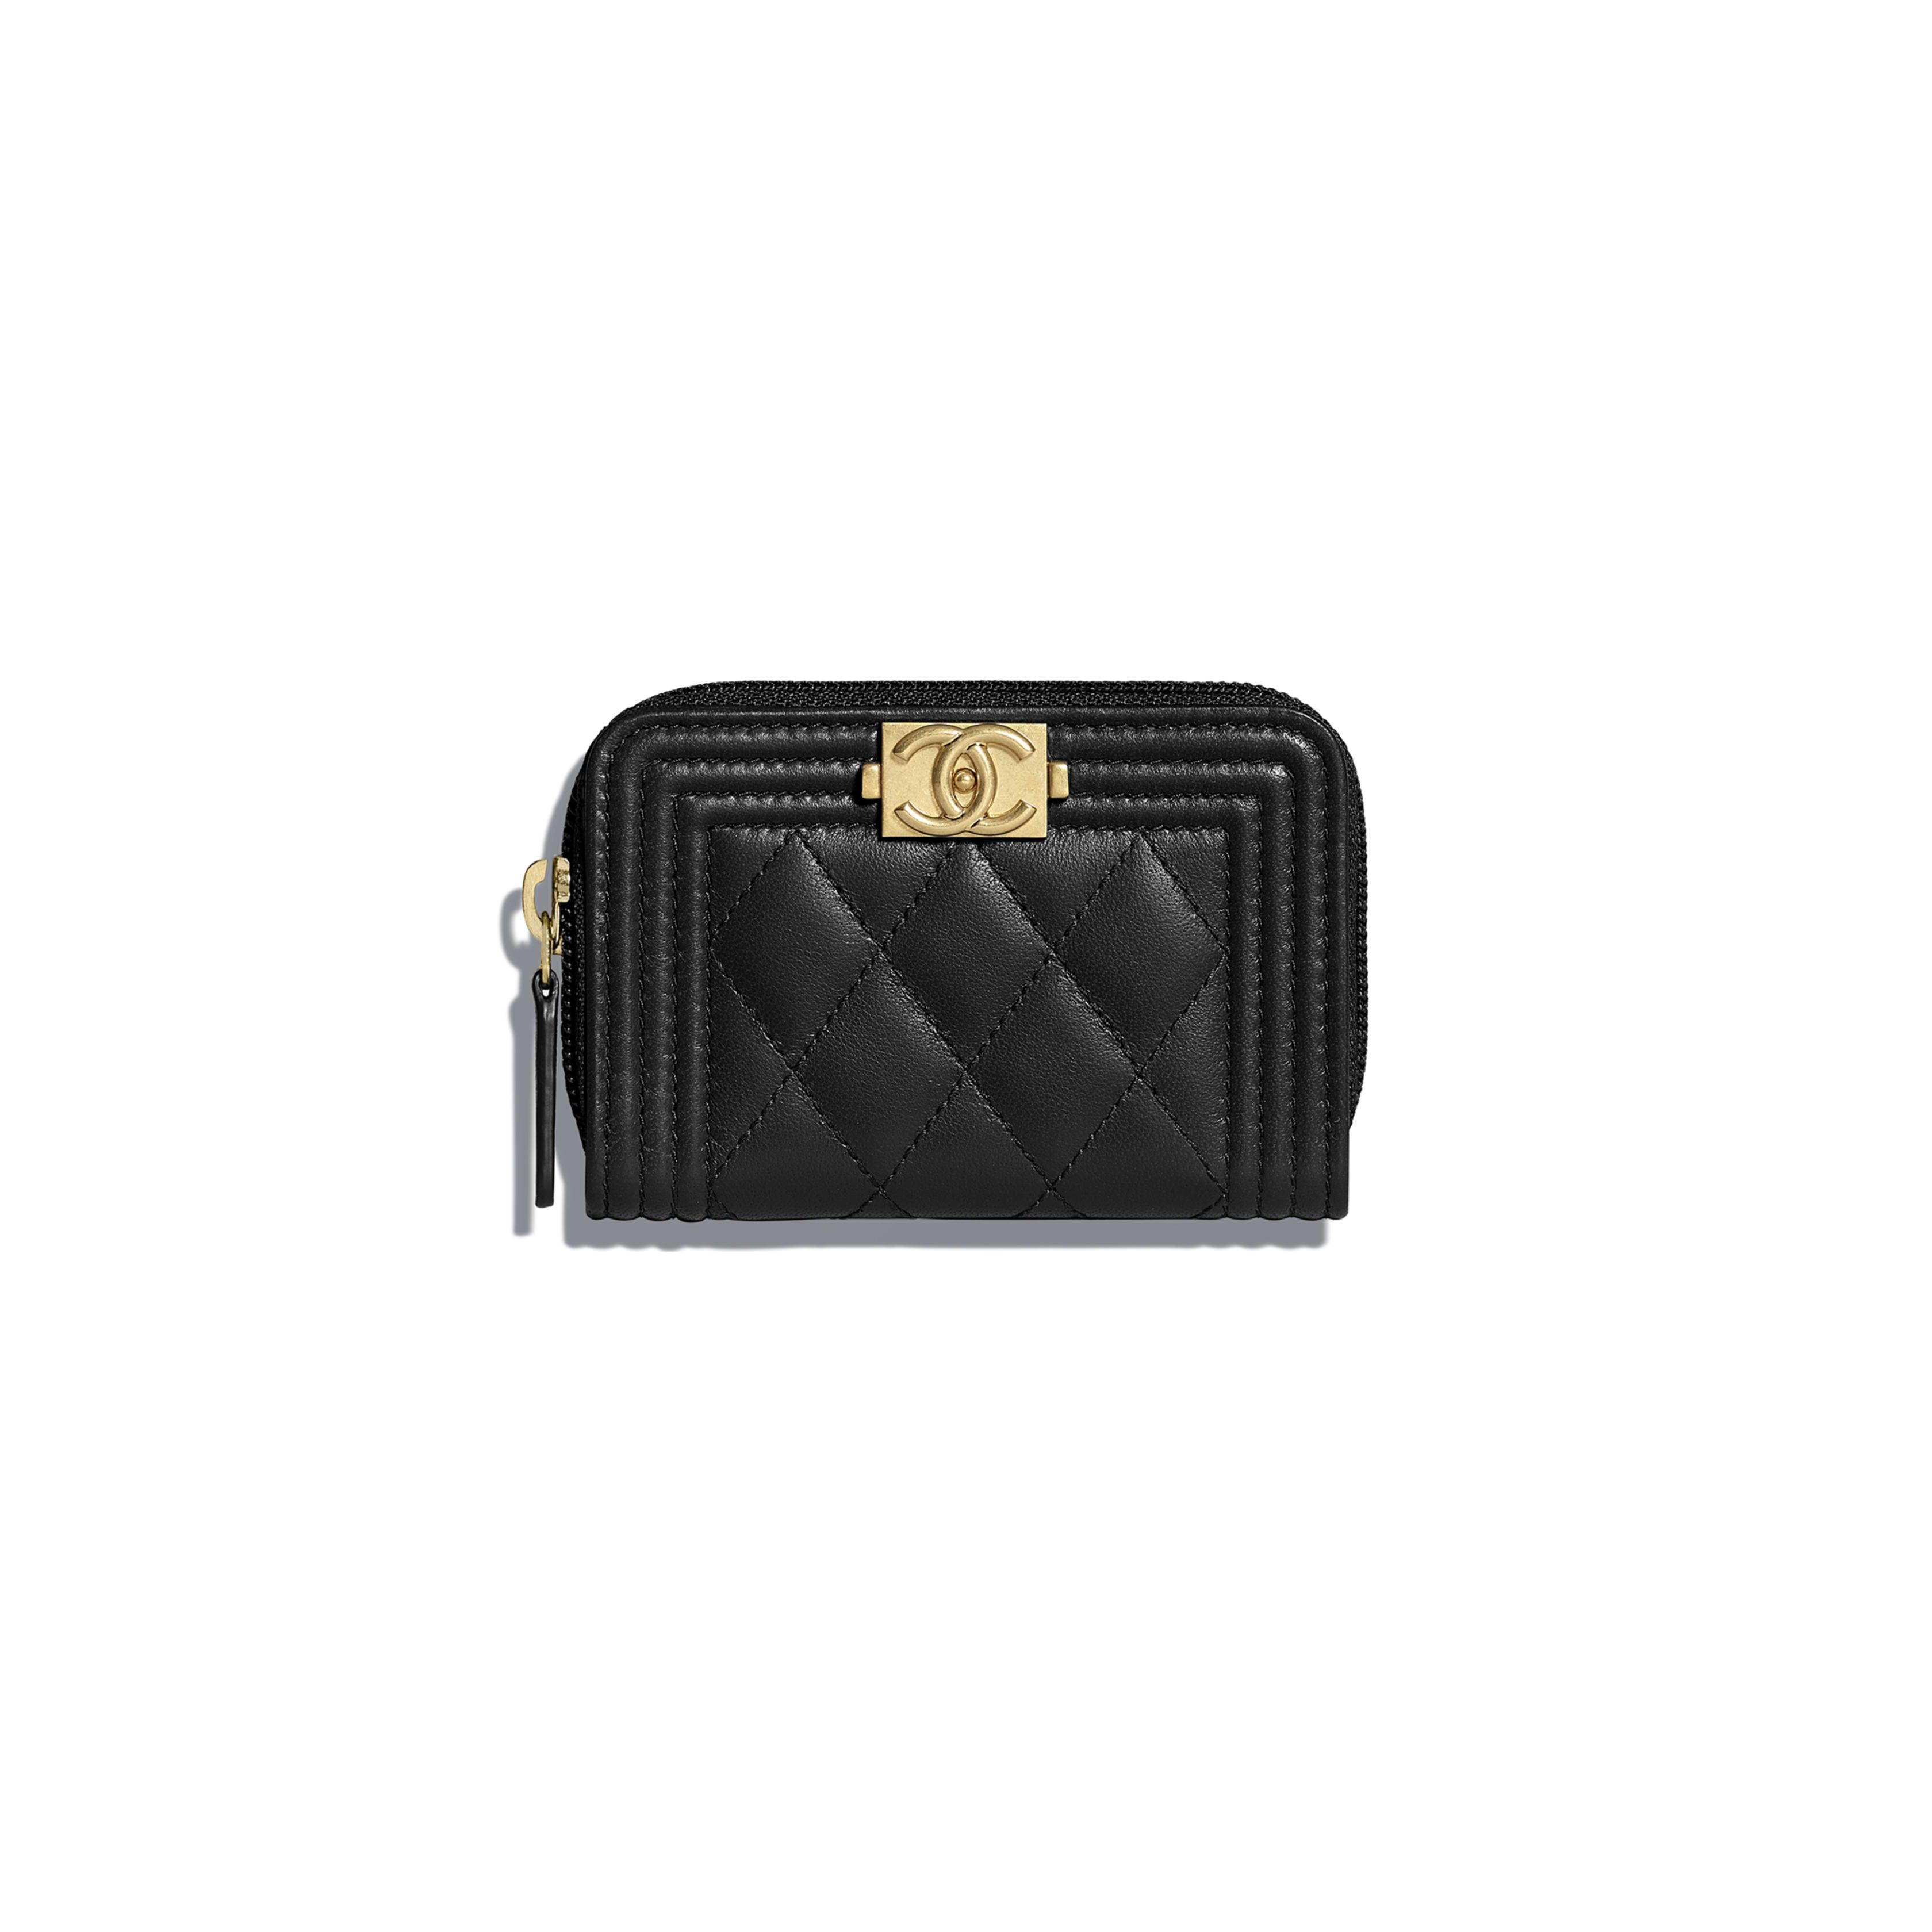 e45bbe282d Lambskin & Gold-Tone Metal Black BOY CHANEL Zipped Coin Purse in ...